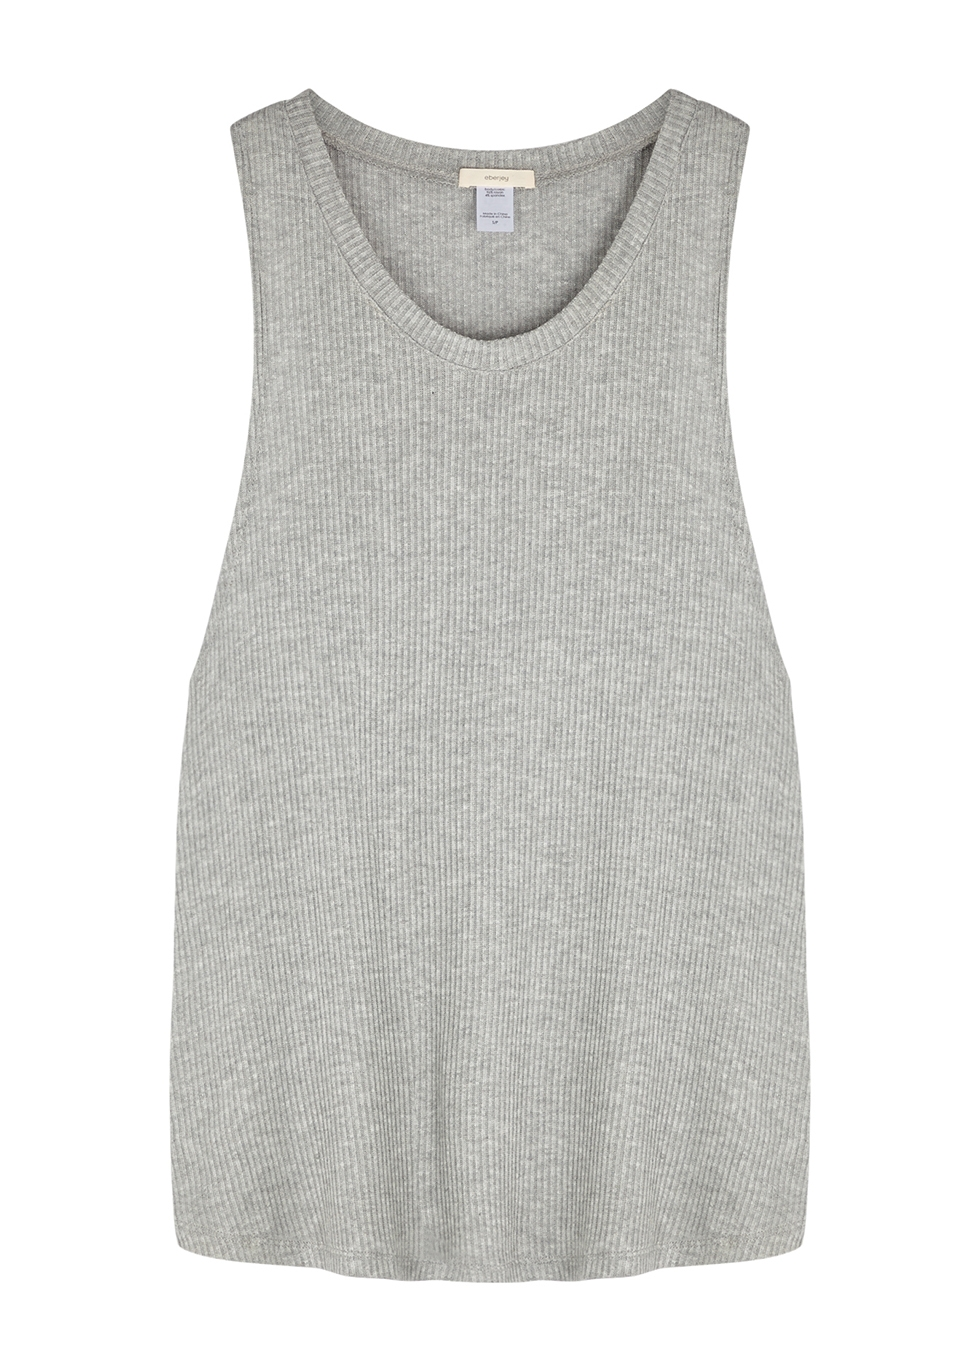 Elon grey ribbed jersey pyjama top